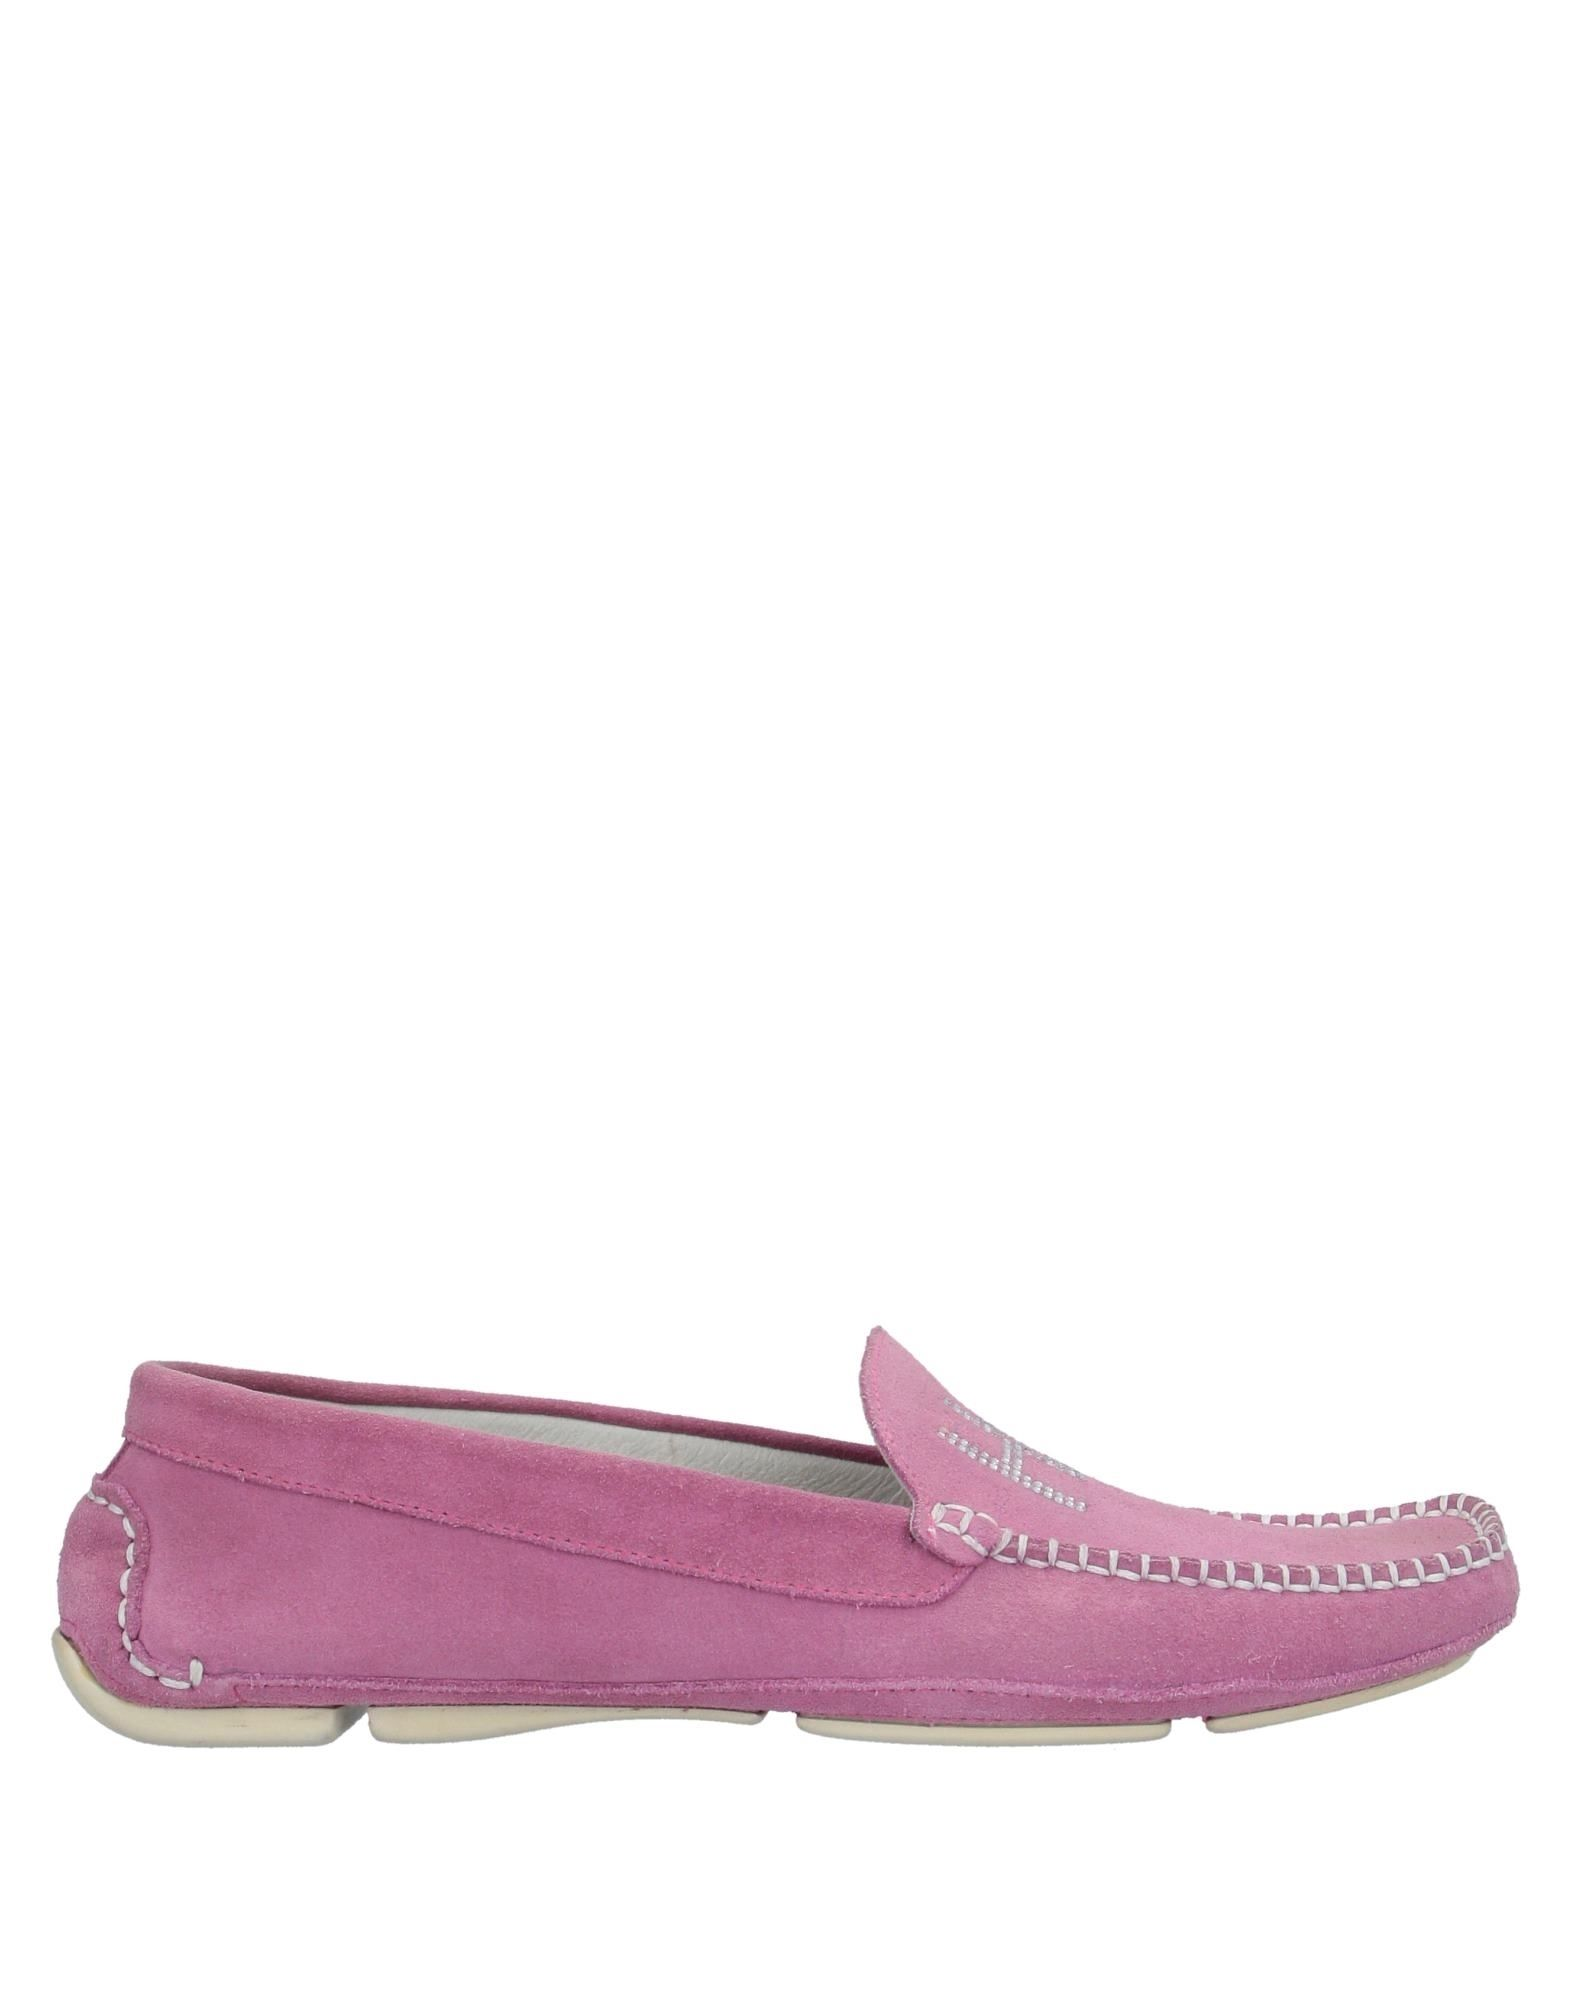 HORNET by BOTTICELLI Loafers - Item 11831430